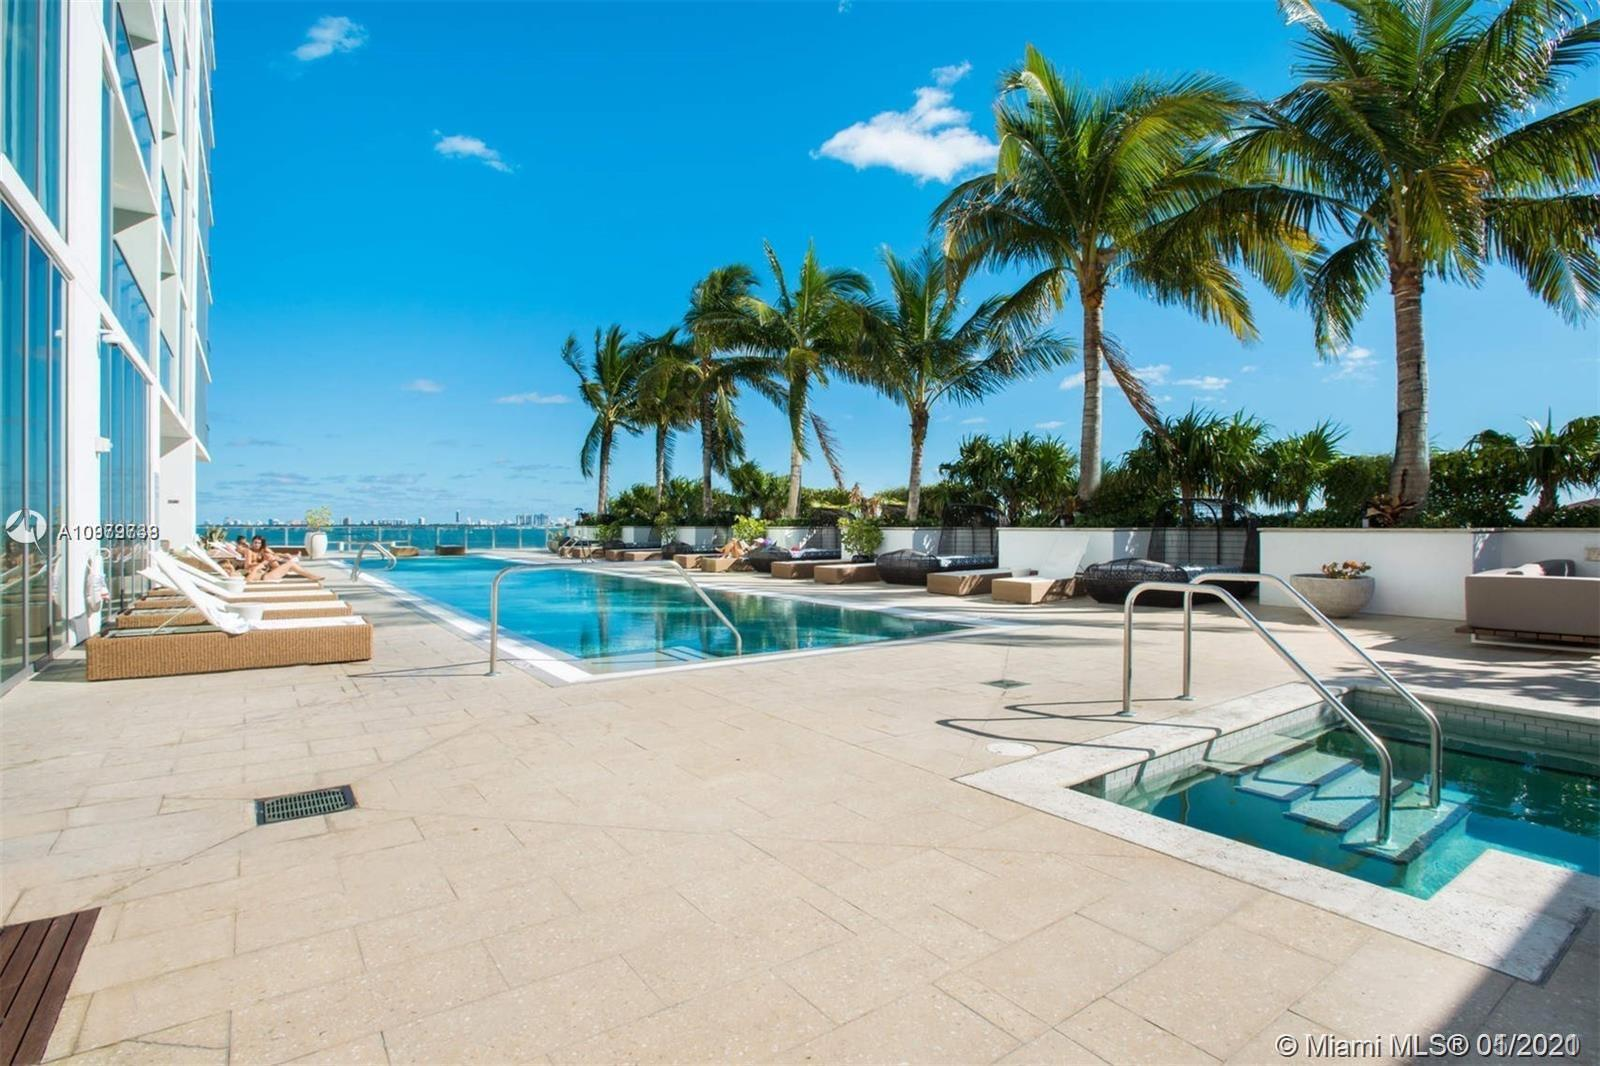 Beautiful apartment at Biscayne Beach Condo with amazing views towards the Bay of Miami.  Luxury liv